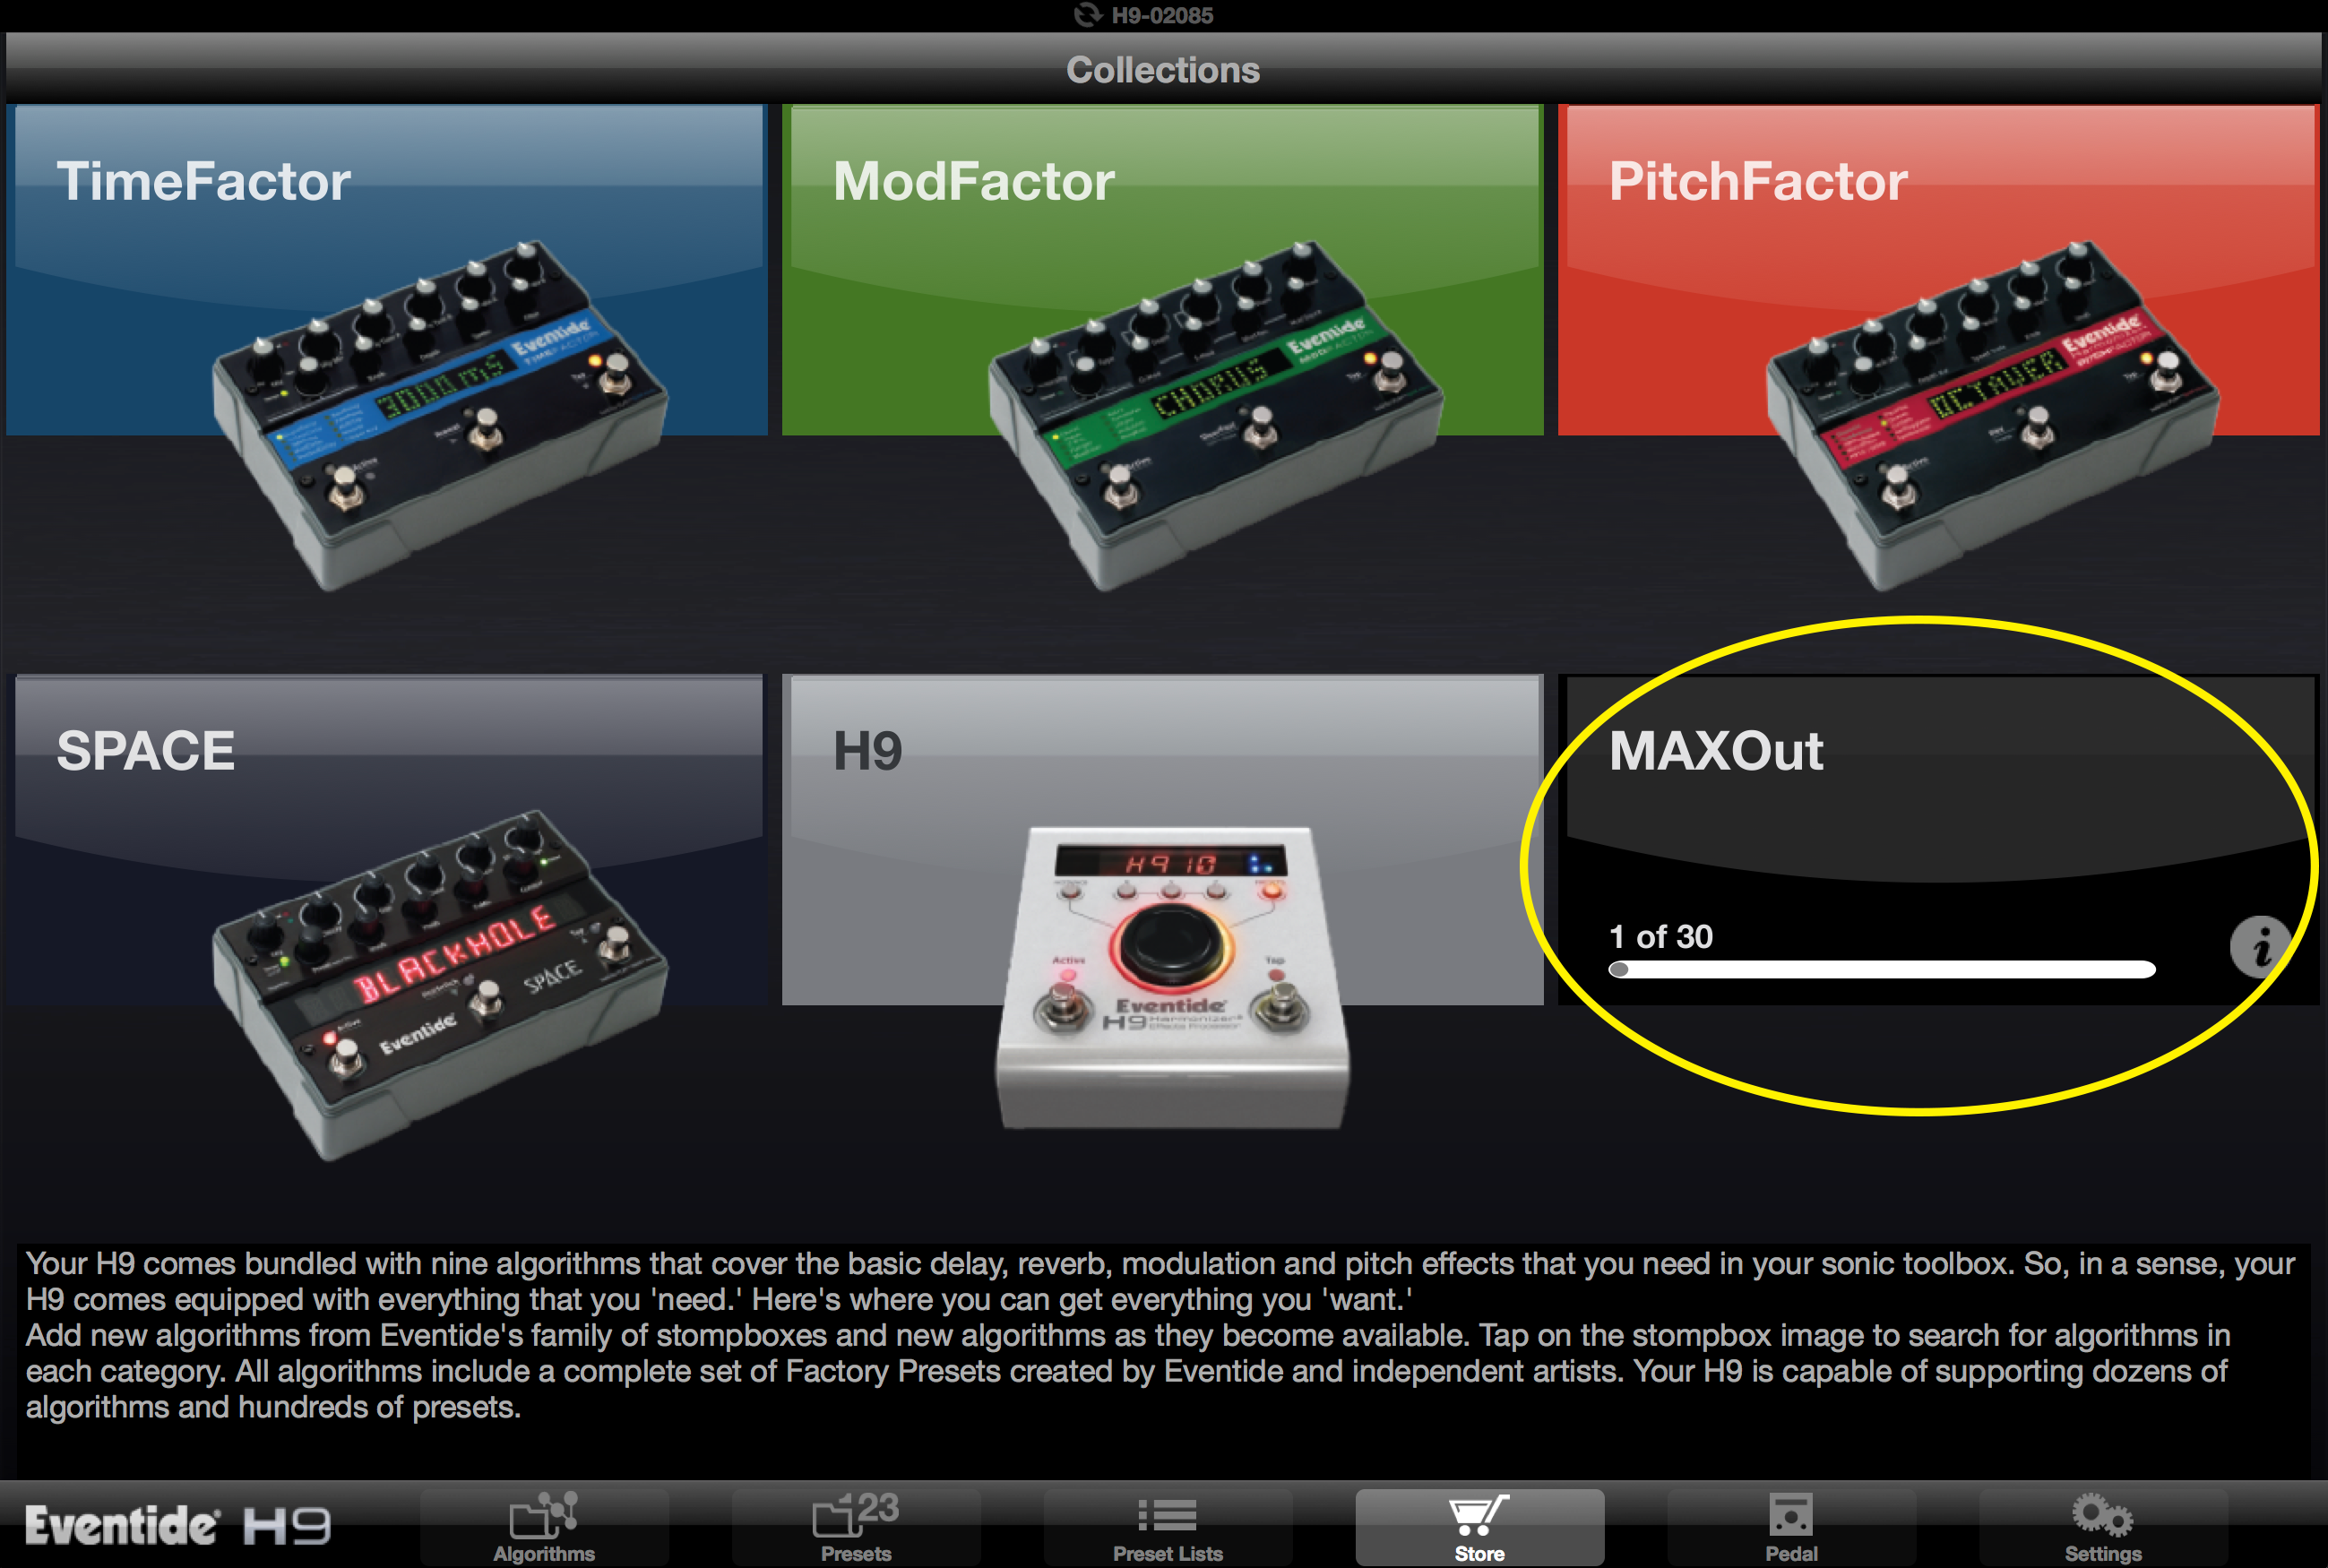 Eventide H9 MaxOut, tutorial